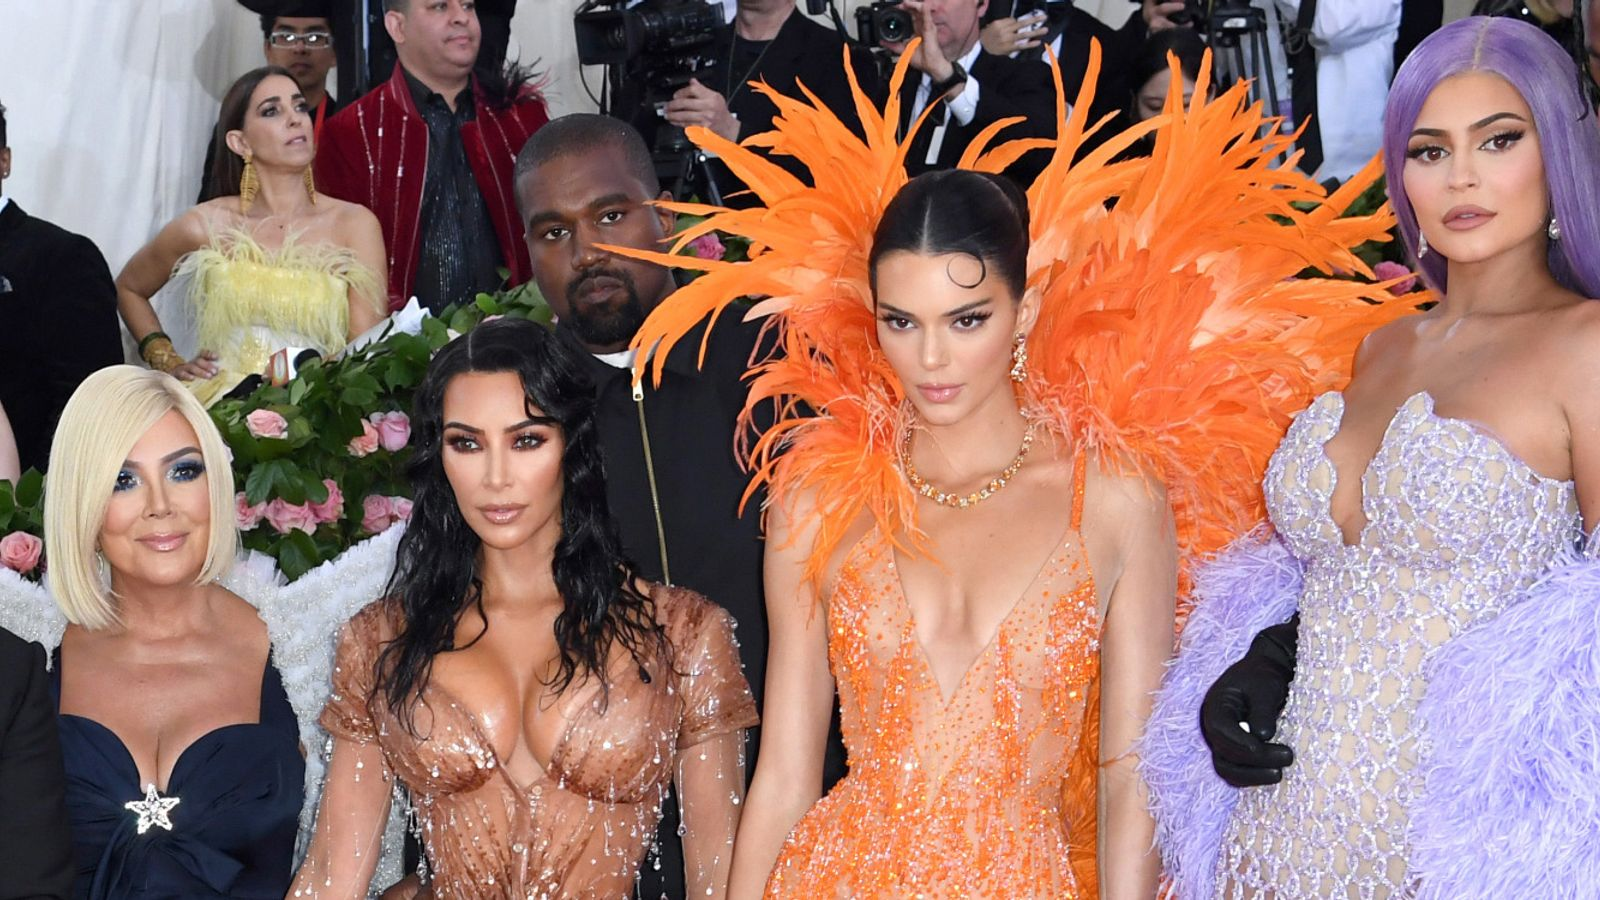 The Kardashians The Reality Tv Family Who Reinvented Fame Ents Arts News Sky News